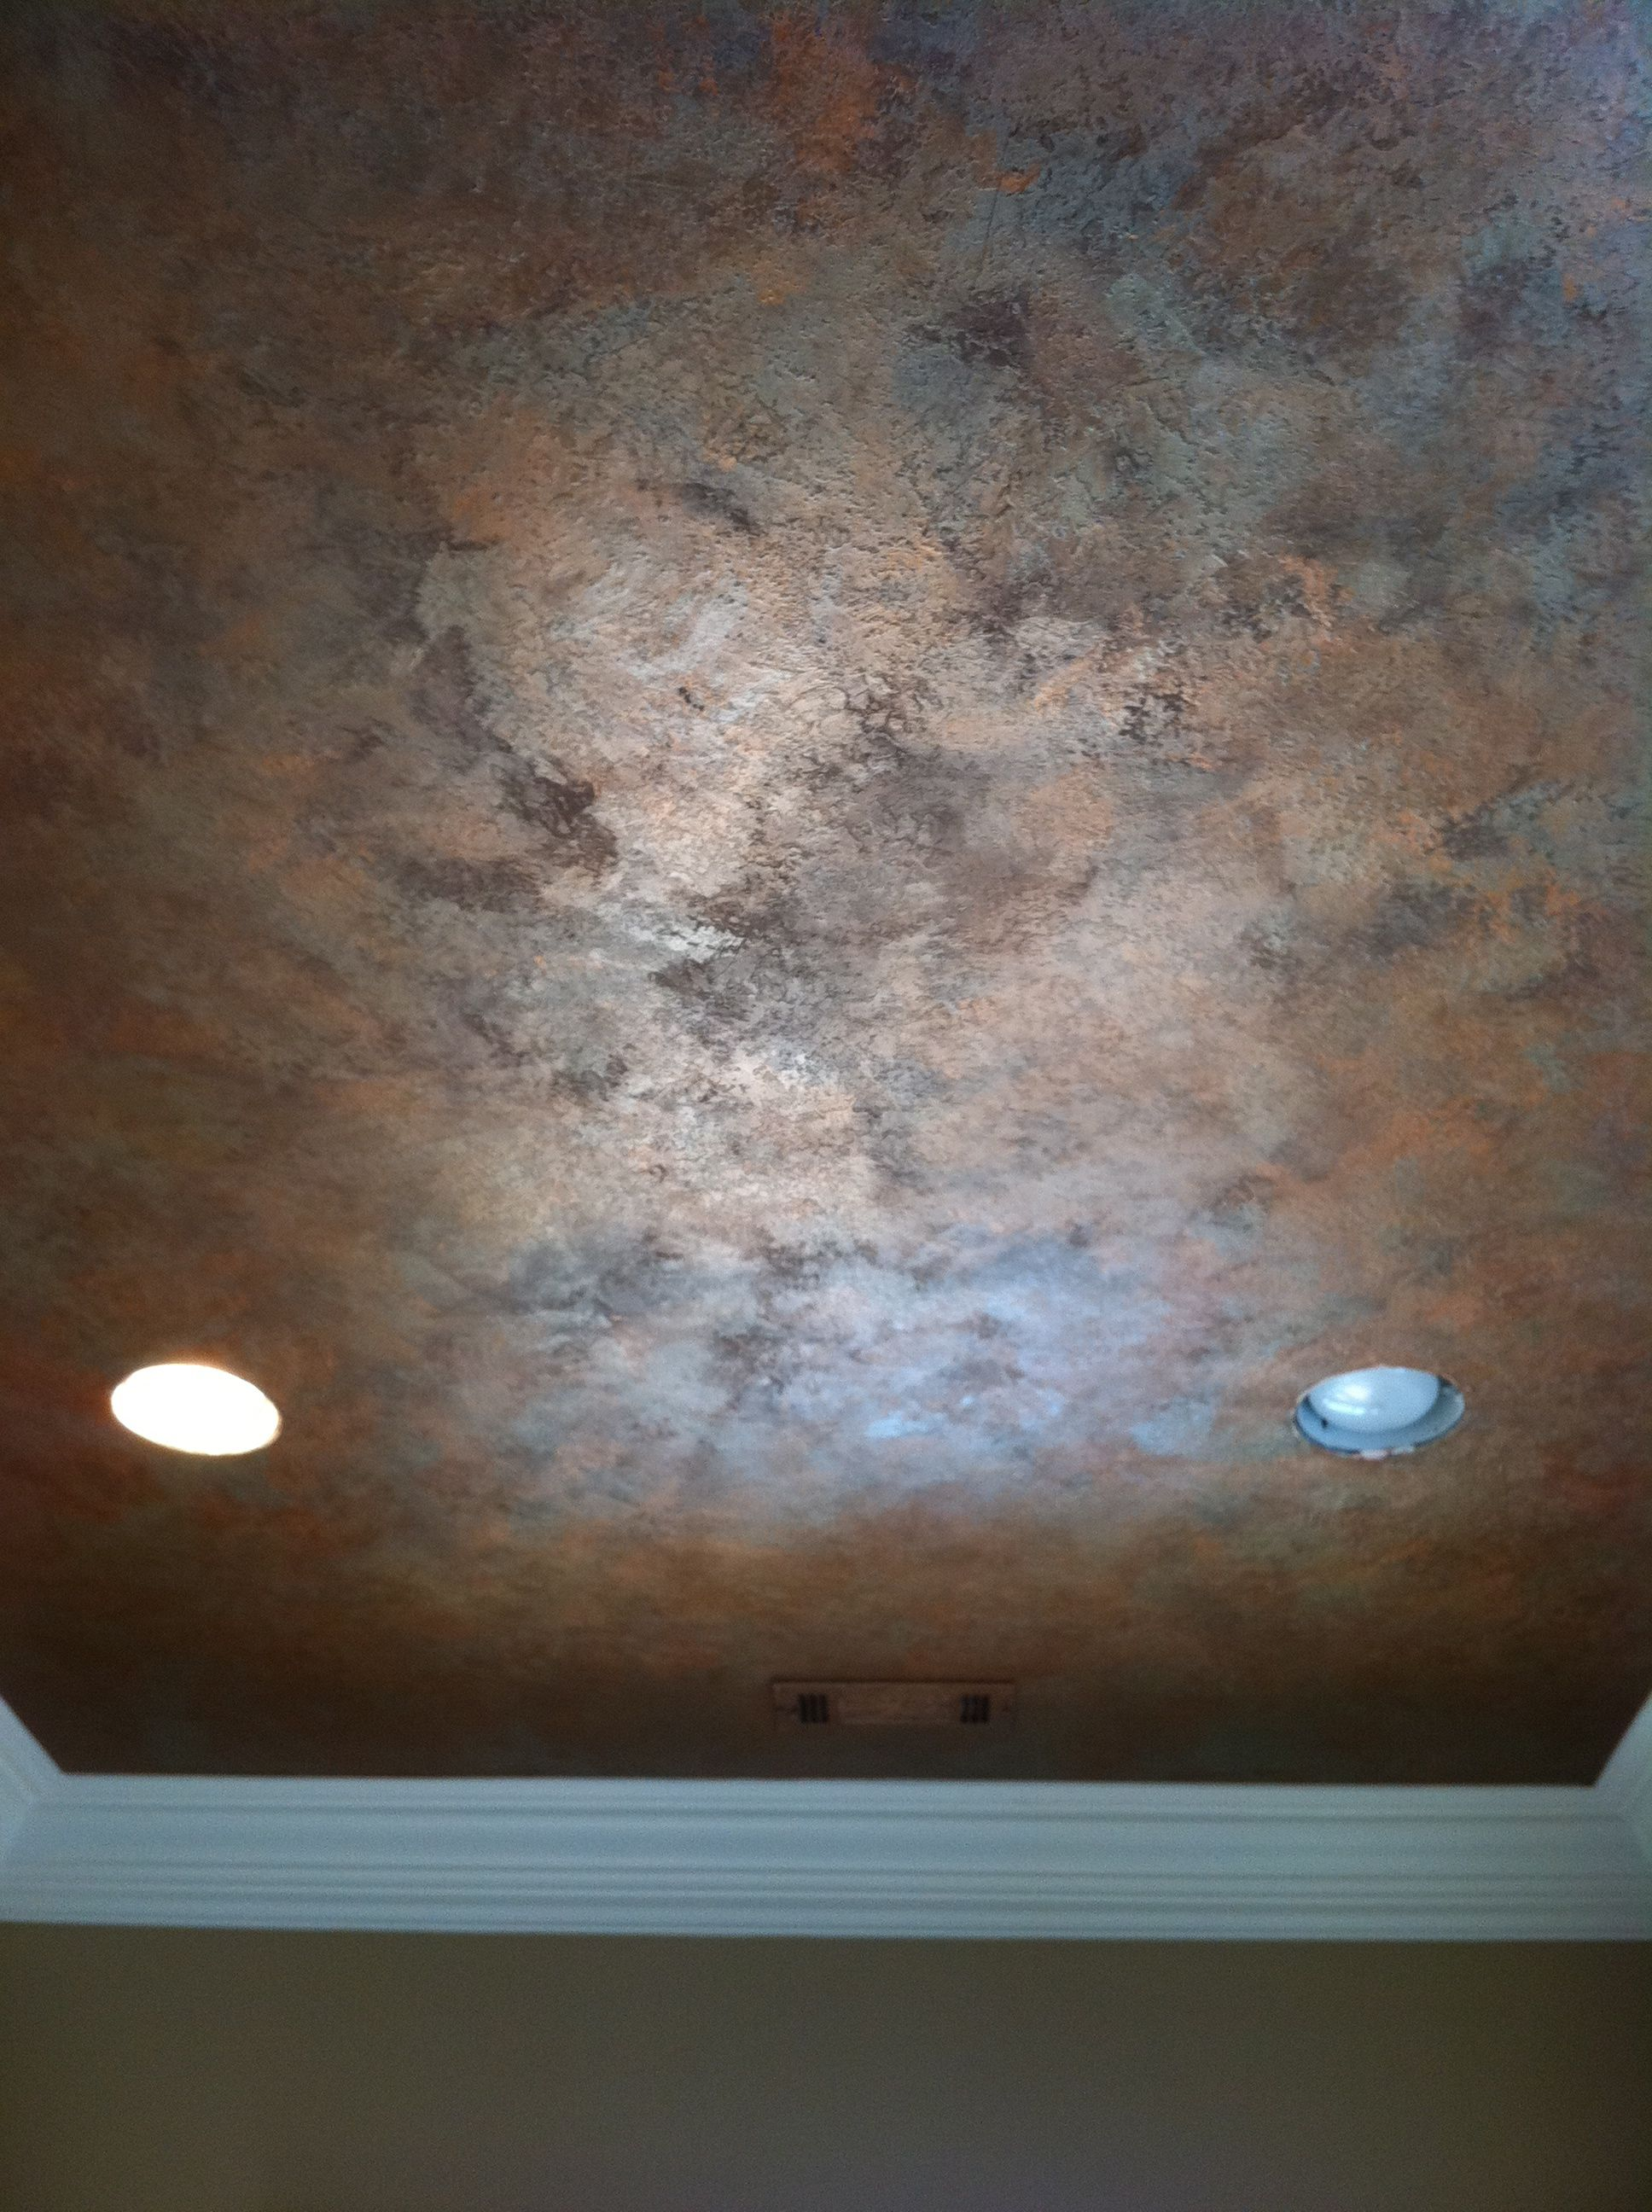 Knock Down Ceiling Knock Down Textured Finish With Metallic Waxes On Ceiling